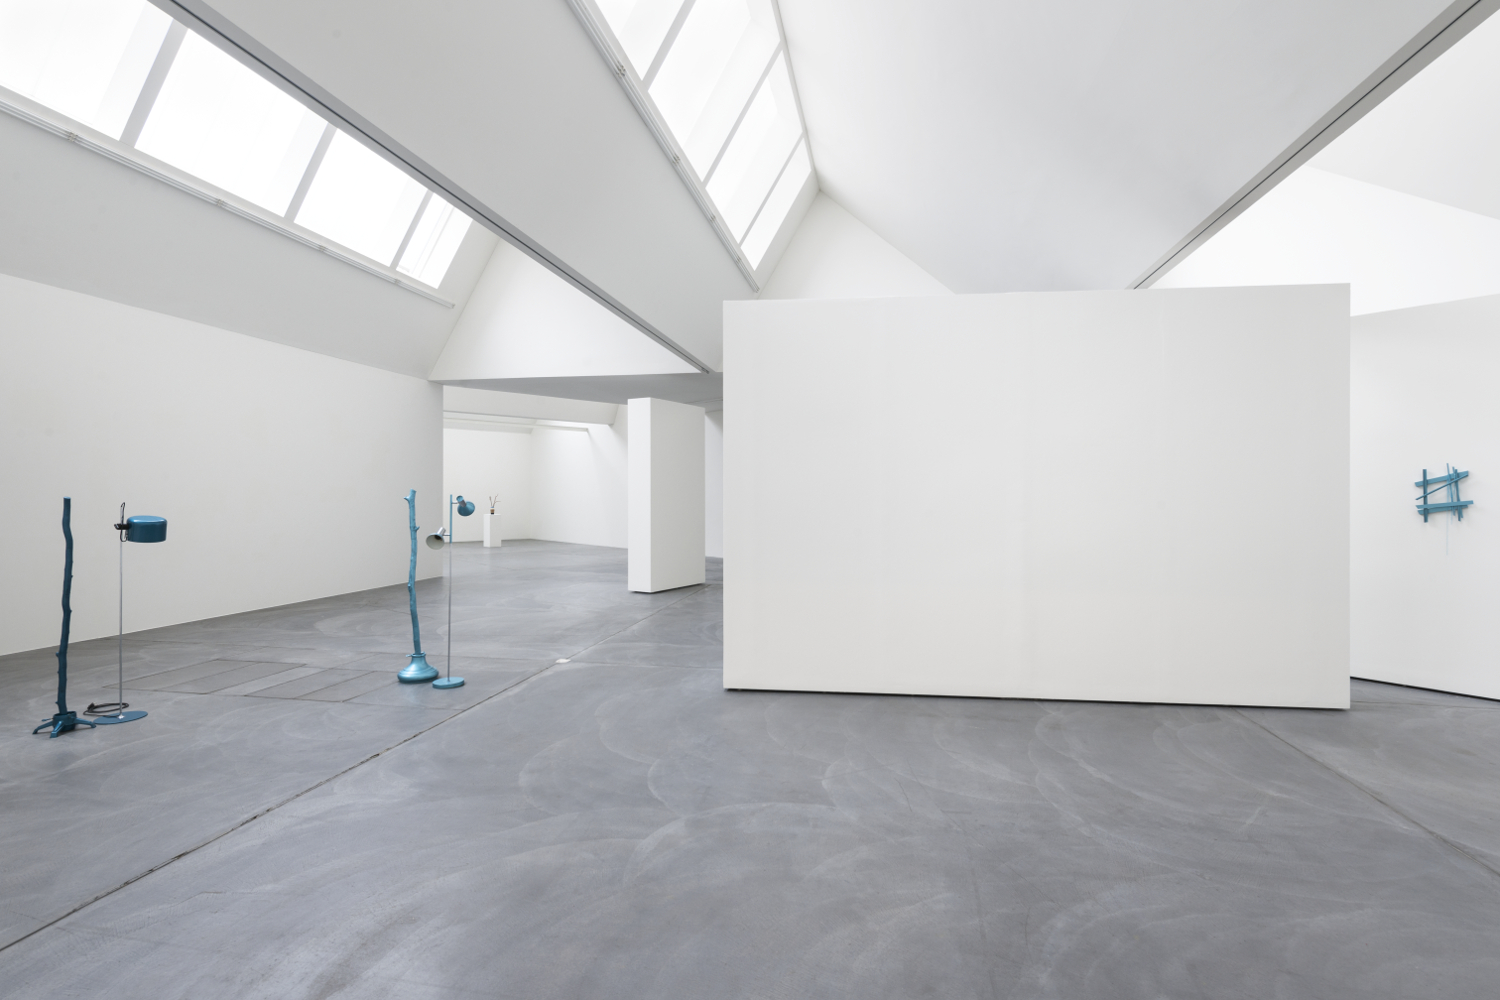 Florian Slotawa at von Bartha, Basel, 9 April - 28 May 2016, installation view, courtesy of von Bartha gallery, photo Andre (1)